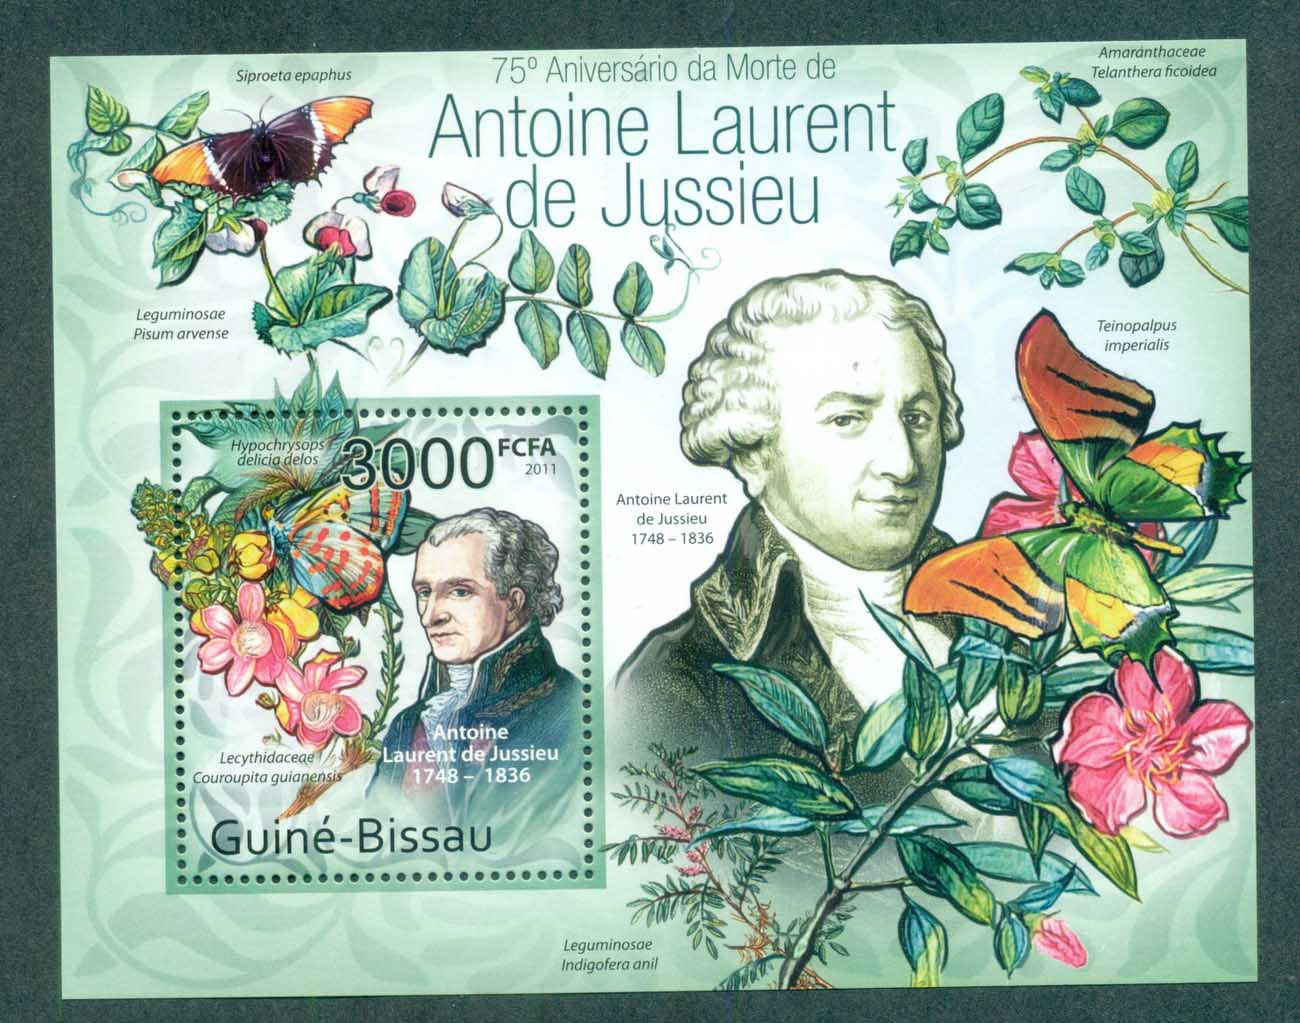 Guinea Bissau 2011 Insects, Butterfly, Antoine Laurent de Jussieu MS MUH GB11419c